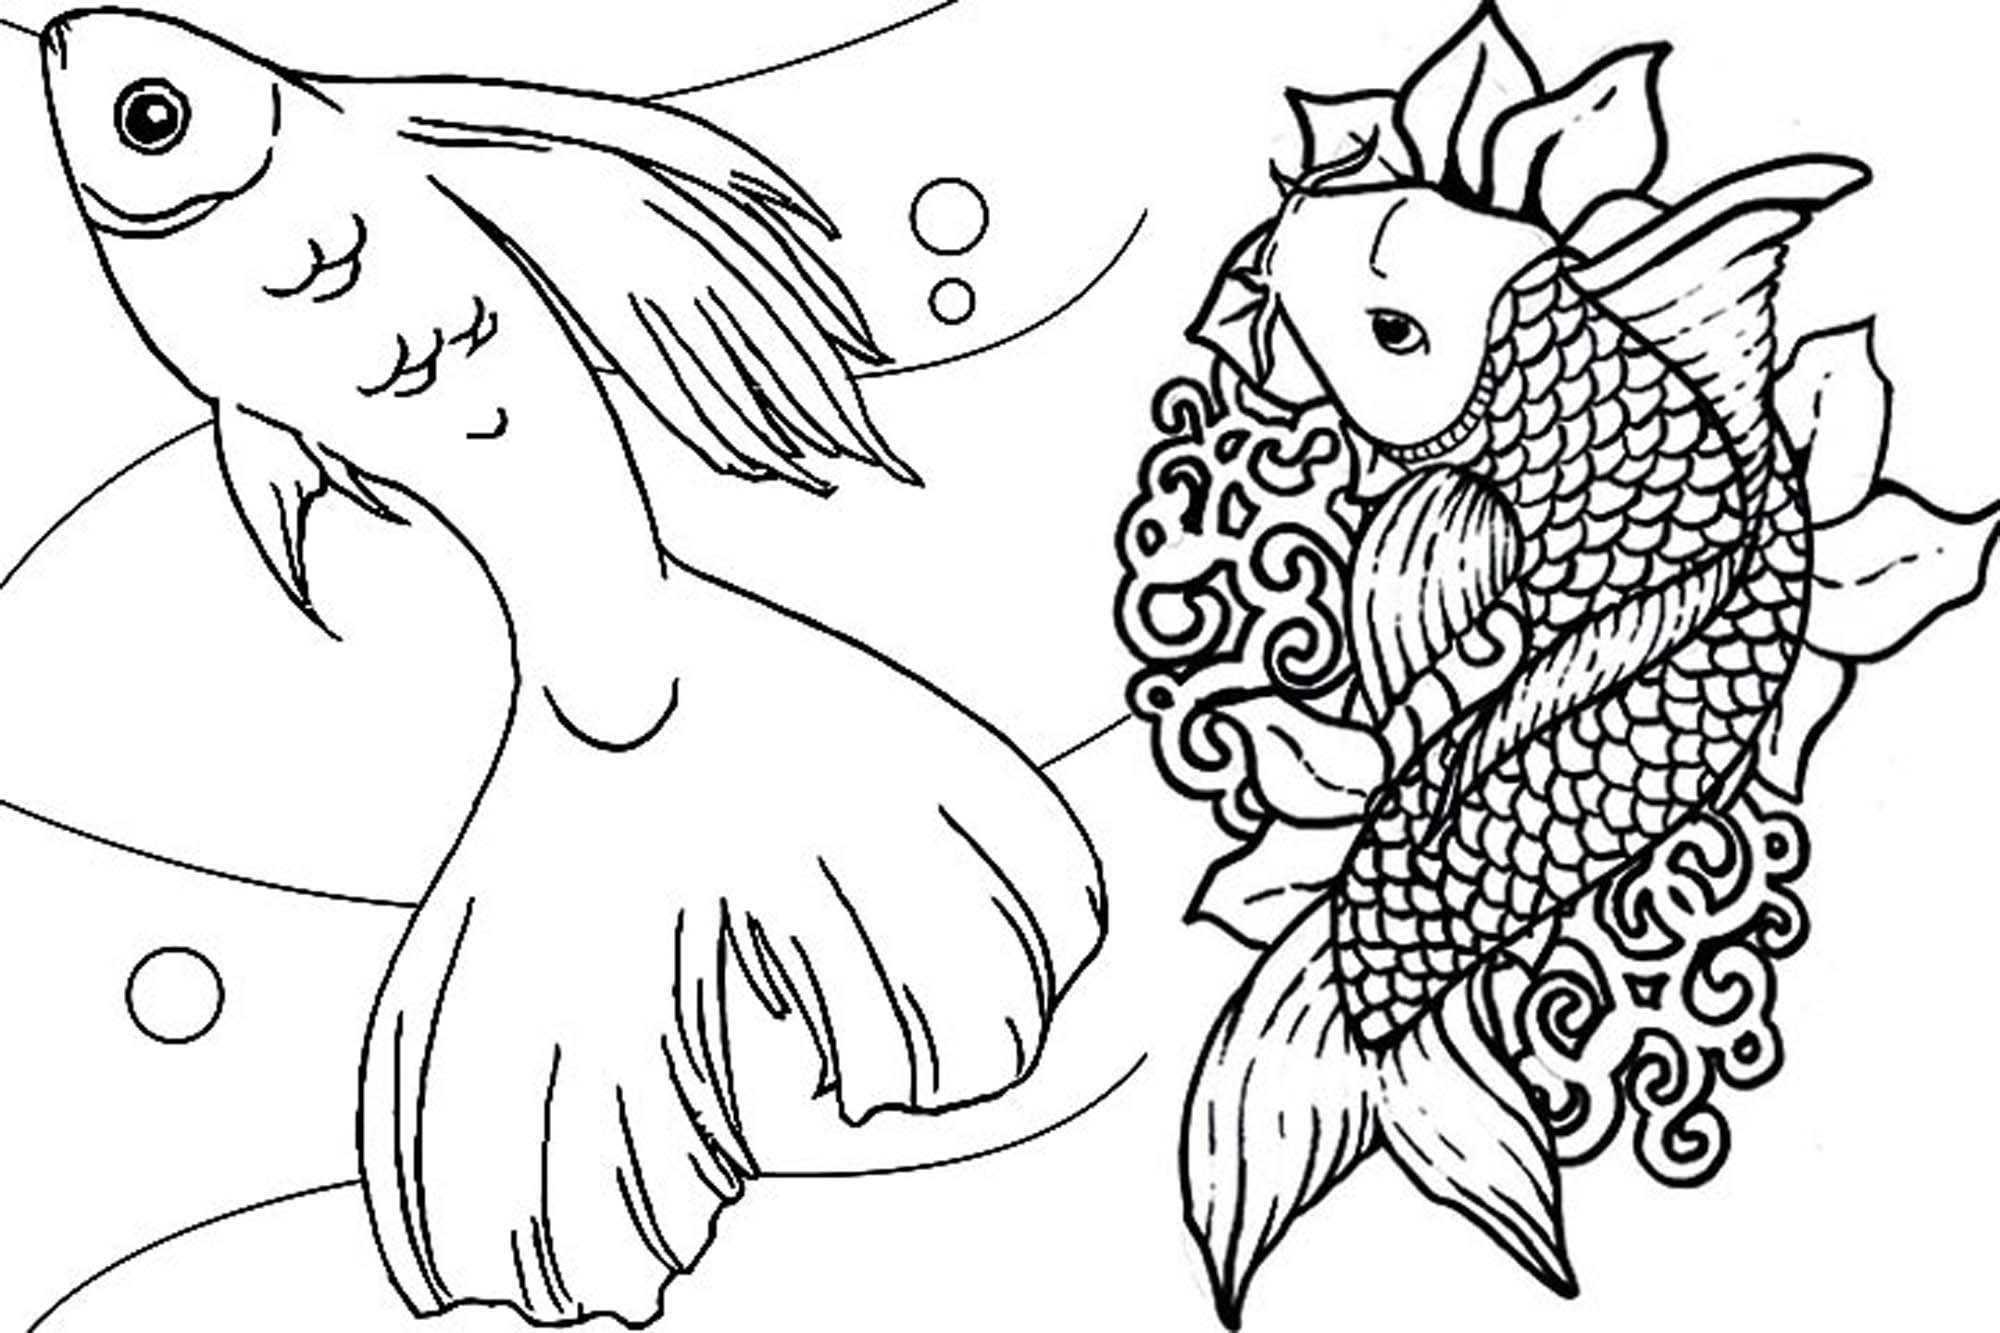 2000x1333 Print Download Cute And Educative Fish Coloring Pages Entrancing